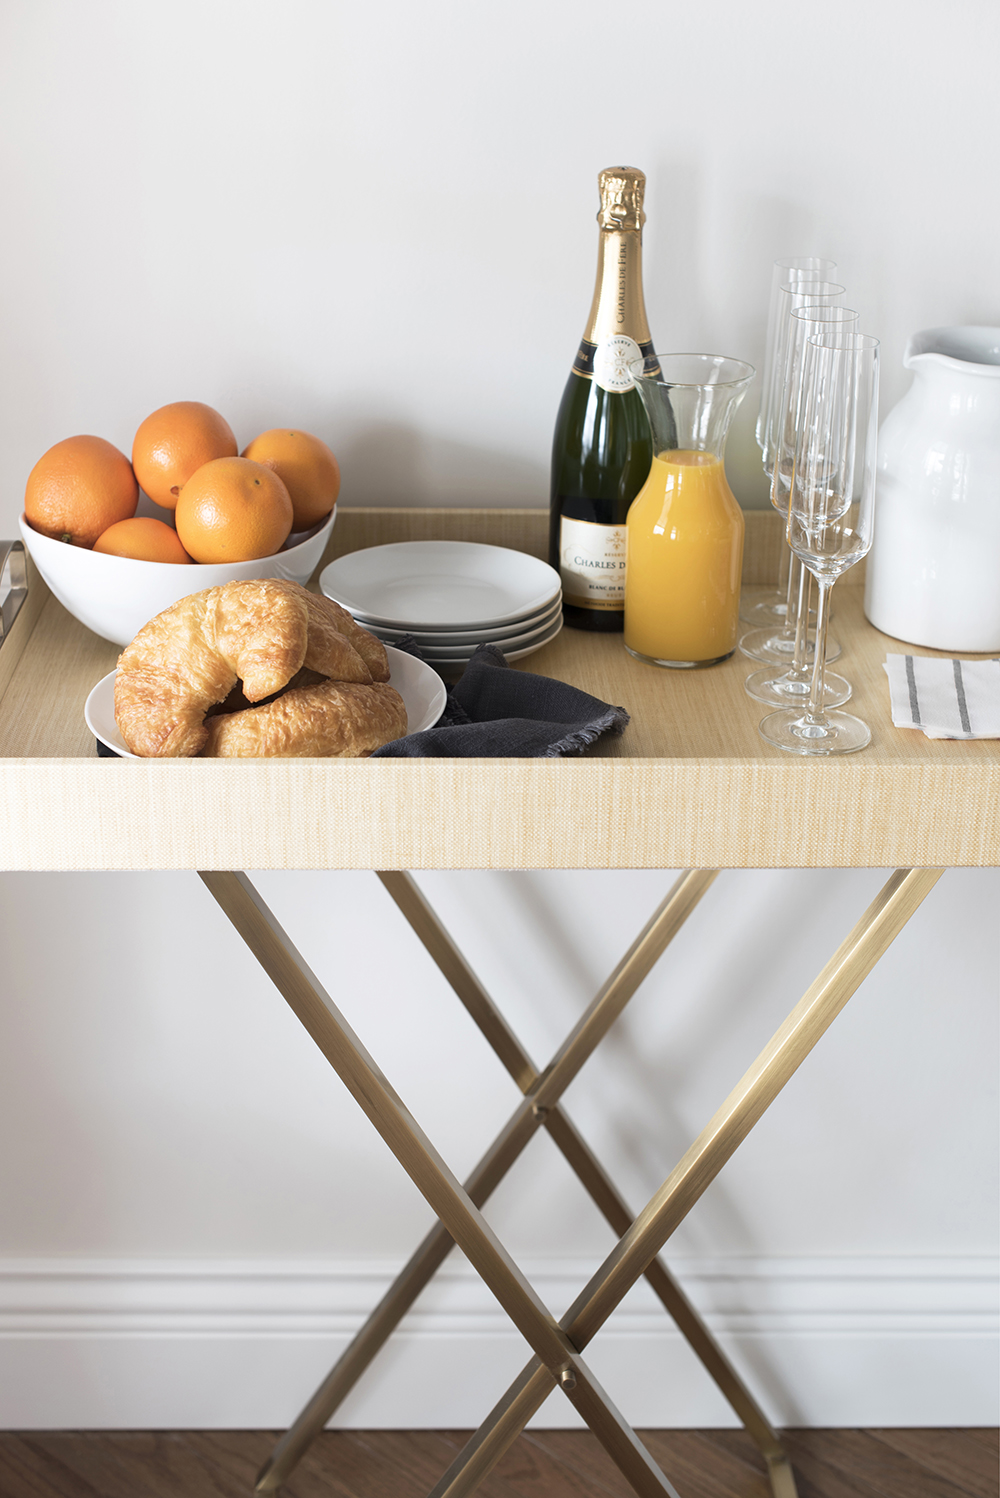 Simple Bar Cart Styling Two Ways : Morning & Night - roomfortuesday.com